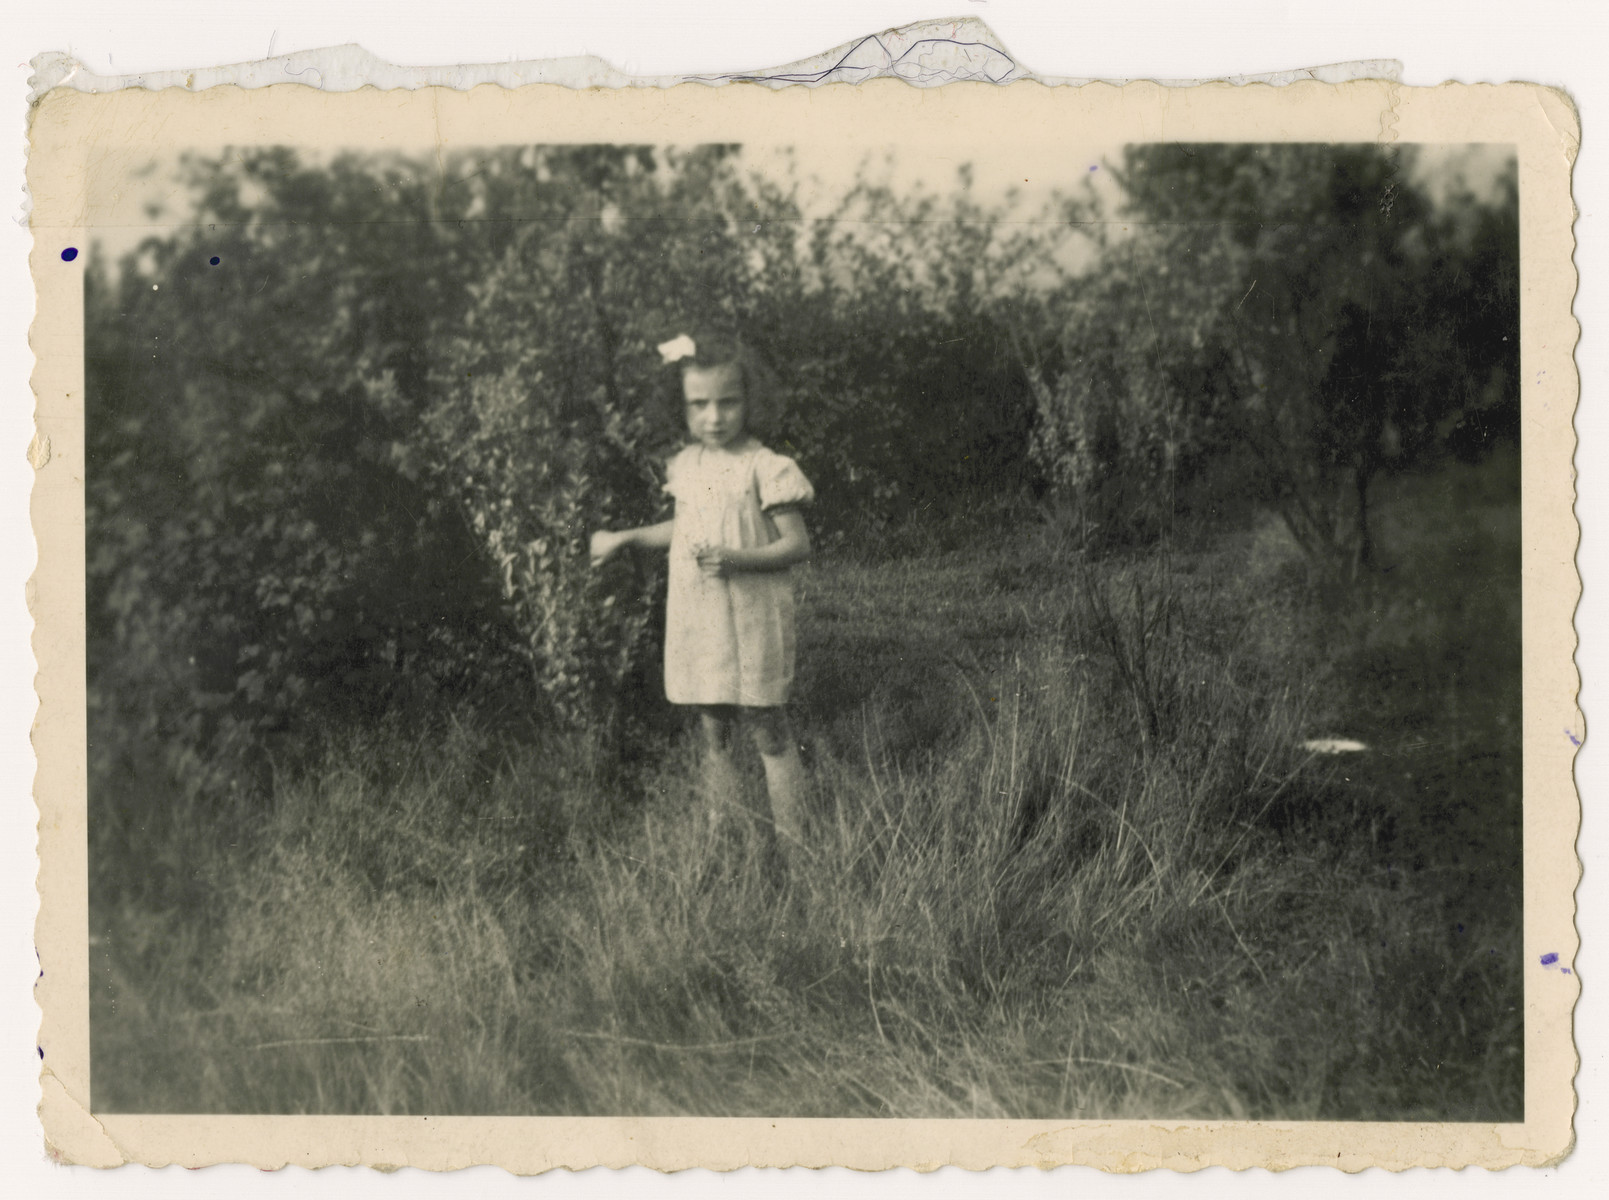 A young Jewish girl who is living in hiding poses outside in a field.  Pictured is Bettie Kipper, a cousin of Nestor Hochglaube.